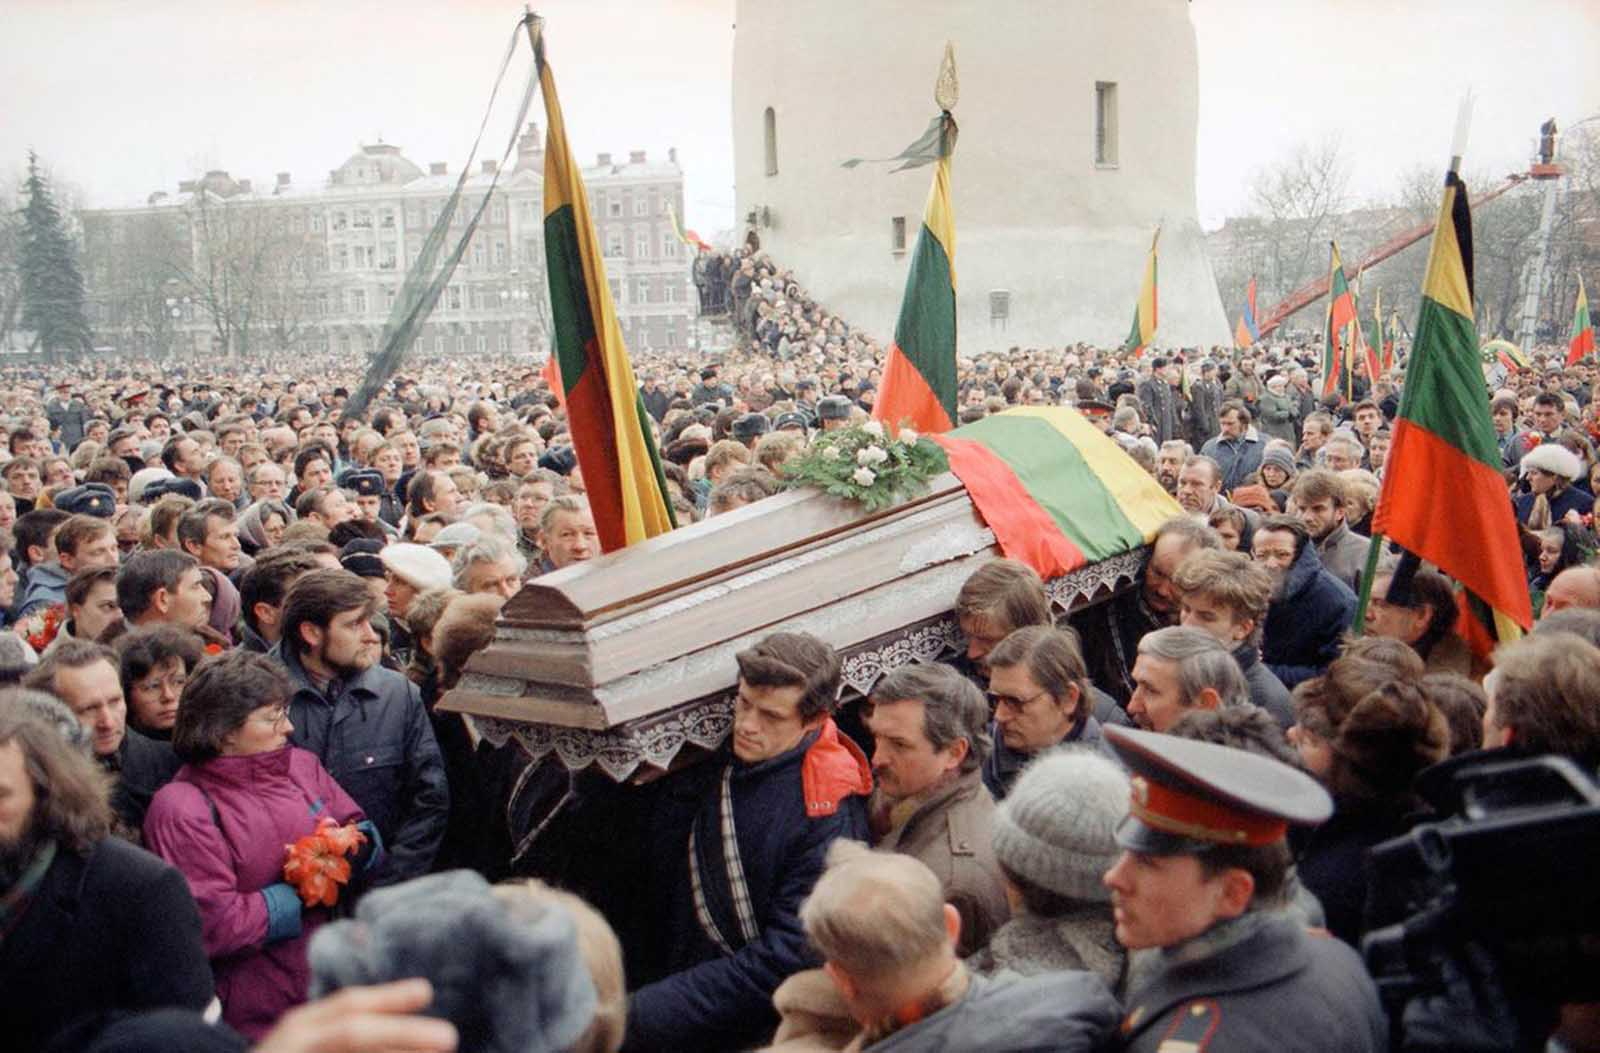 Pall-bearers carry a flag-draped casket during a funeral procession through Vilnius, on January 16, 1991, for 10 of the 13 people killed when Soviet troops stormed the Lithuanian broadcast center the previous weekend. Hundreds of thousands of Lithuanians jammed the procession route to mourn their national heroes.